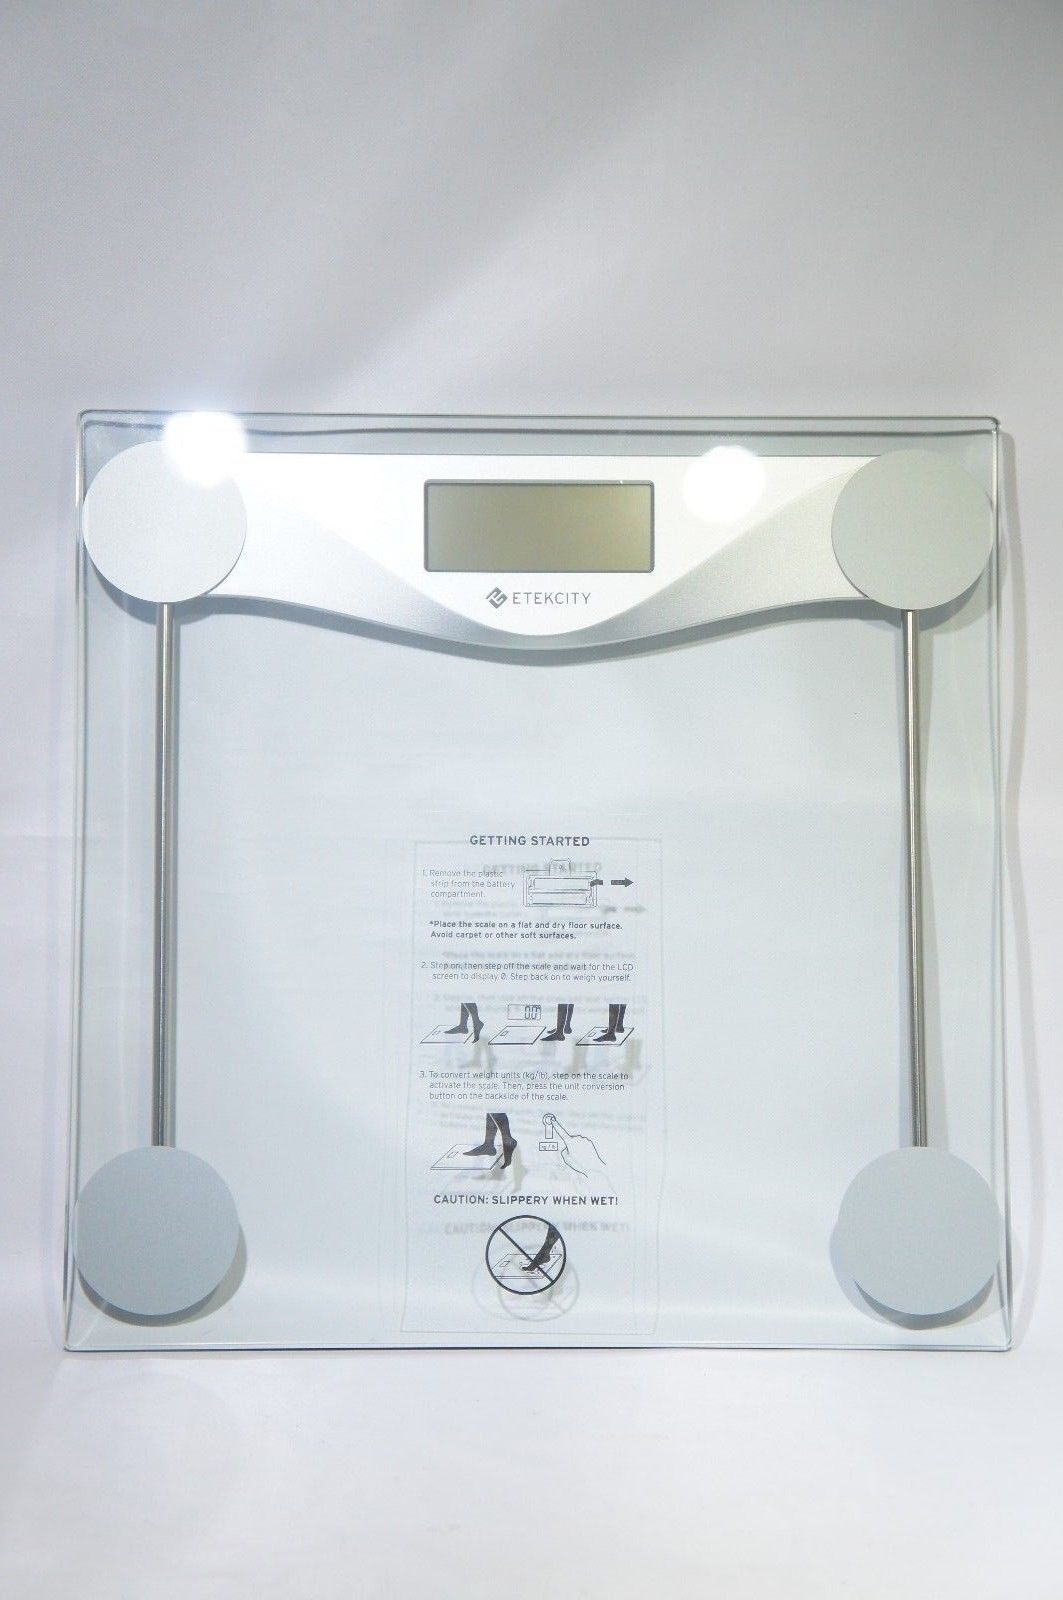 Etekcity EB4074C Digital Bathroom Body Weight Scale, Tempered glass